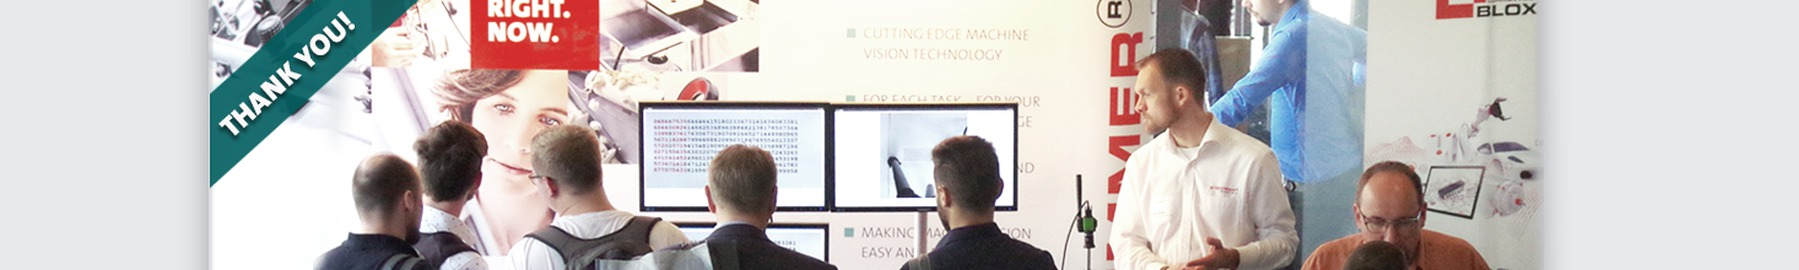 Machine Vision Technology Forum - Thank you!